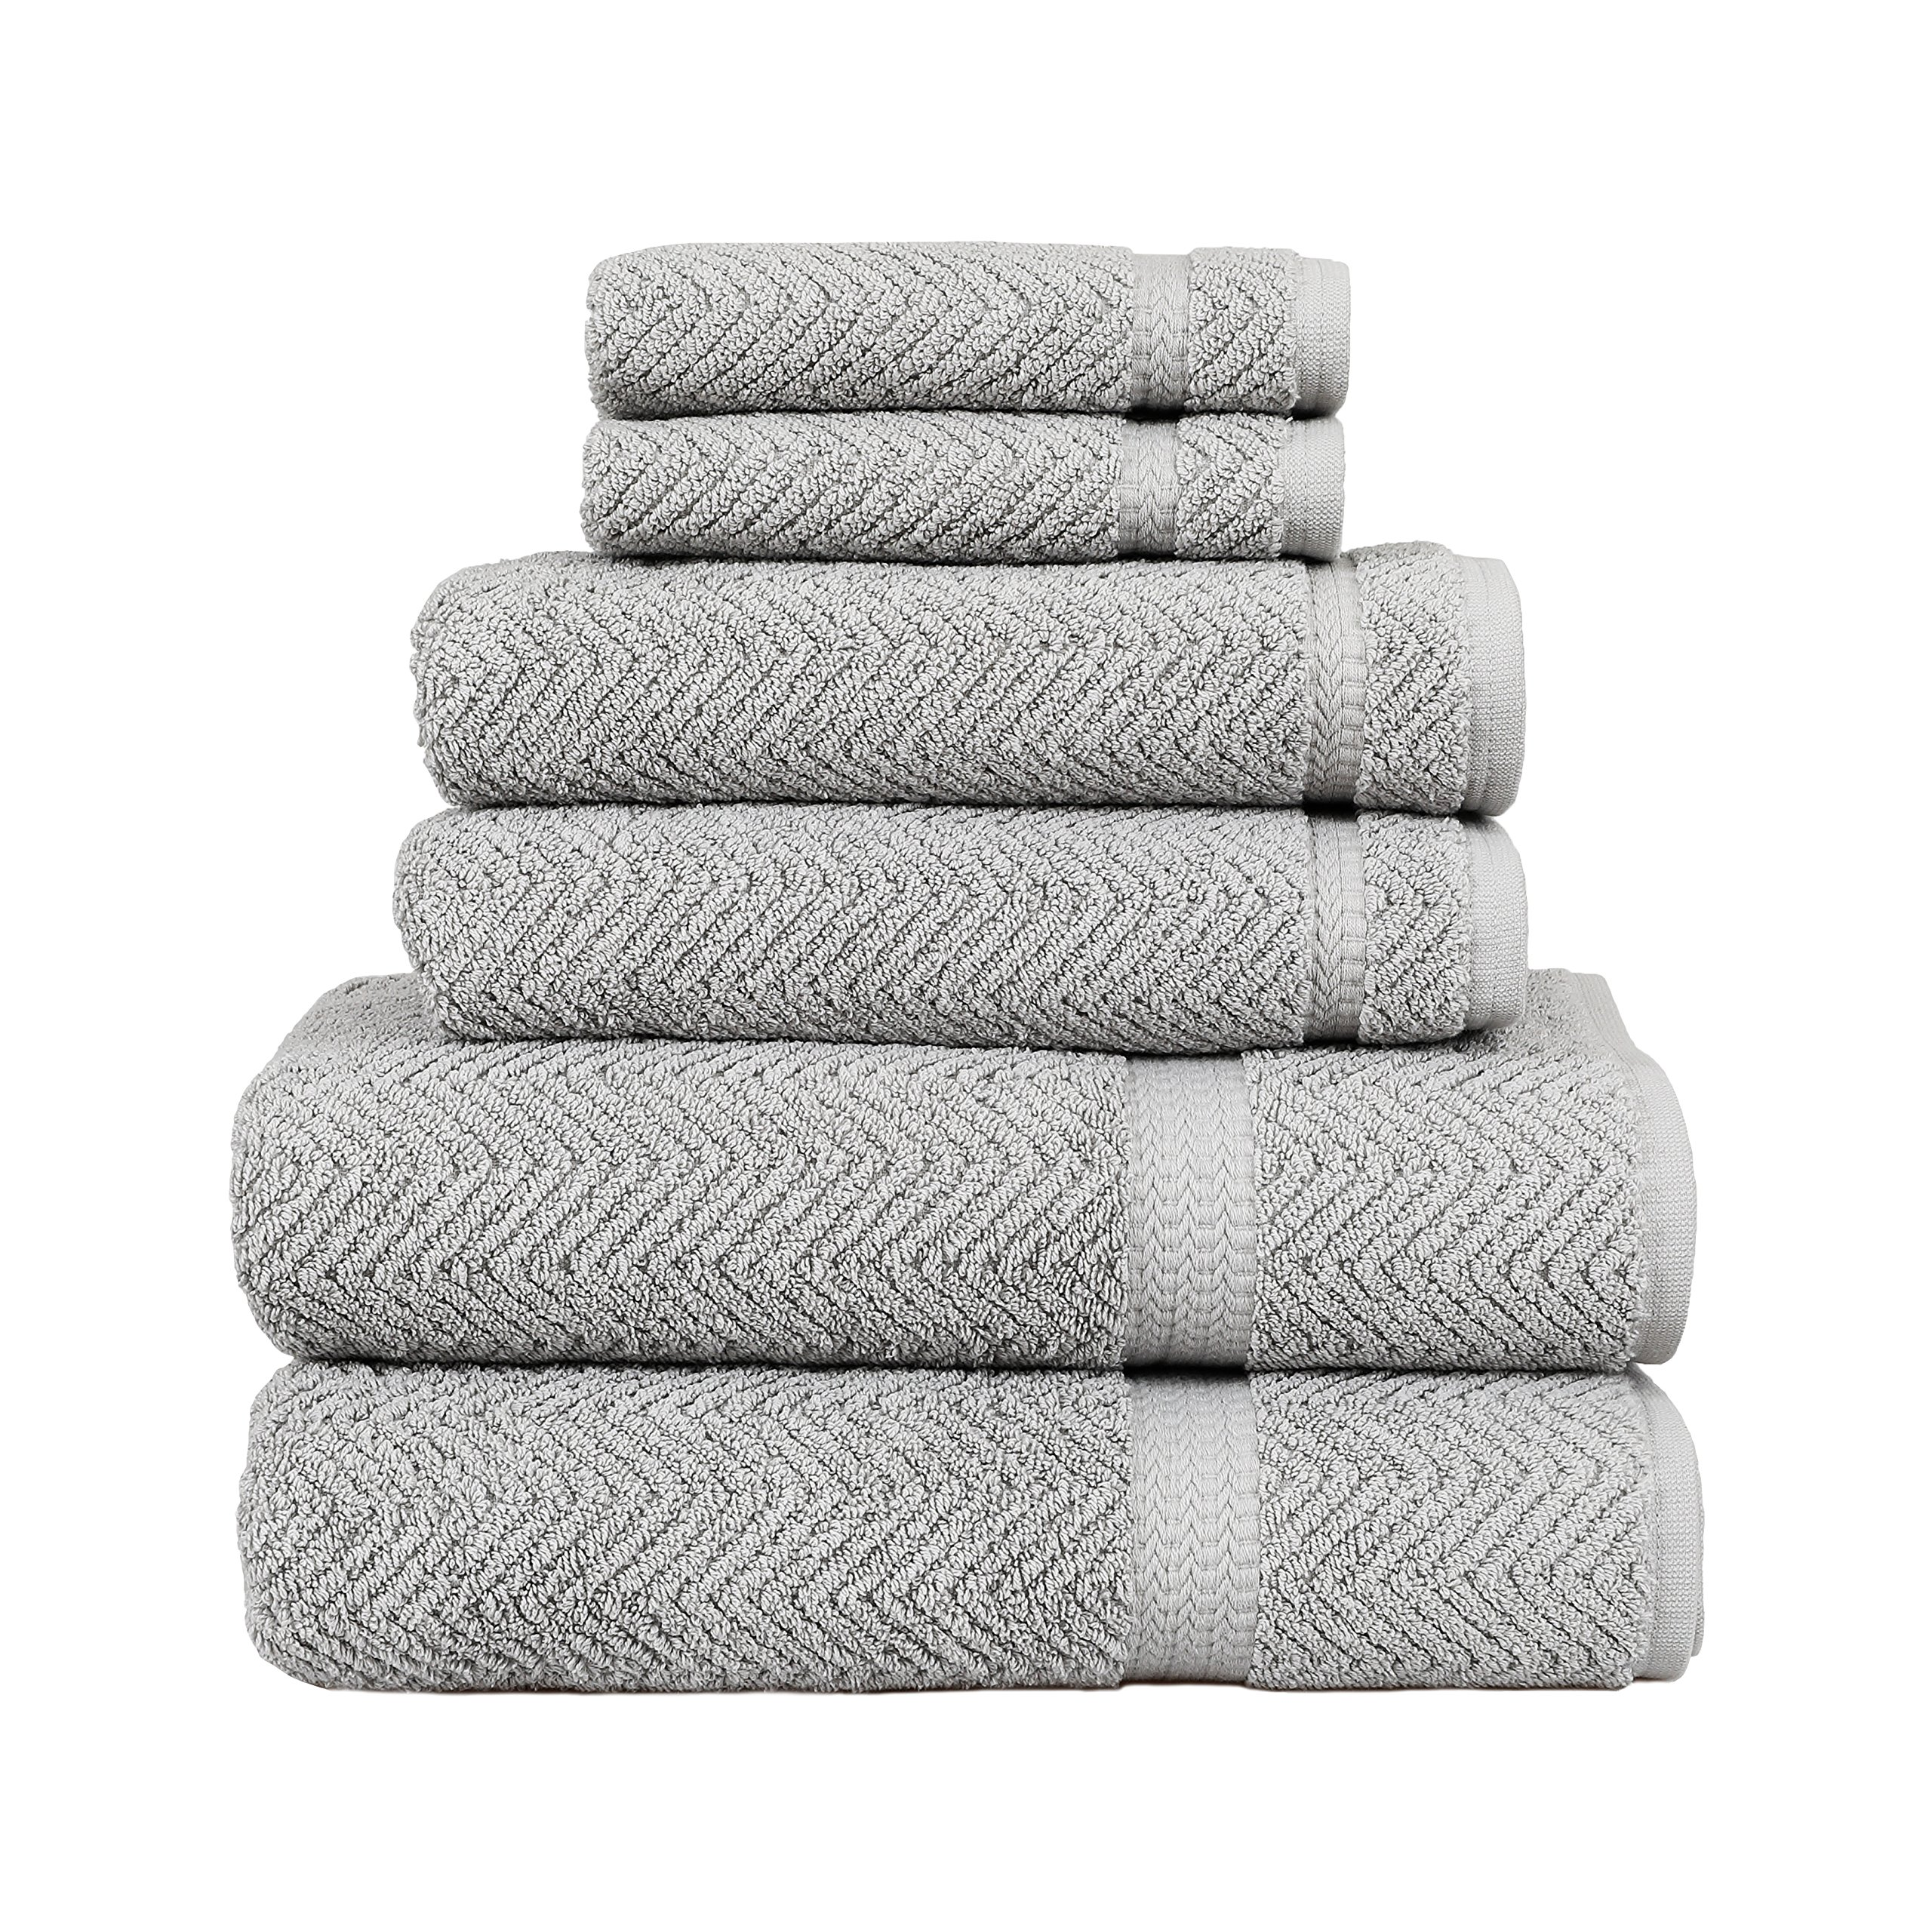 Linum Home Textiles Herringbone 100% Turkish Cotton 6 Piece Towel Set